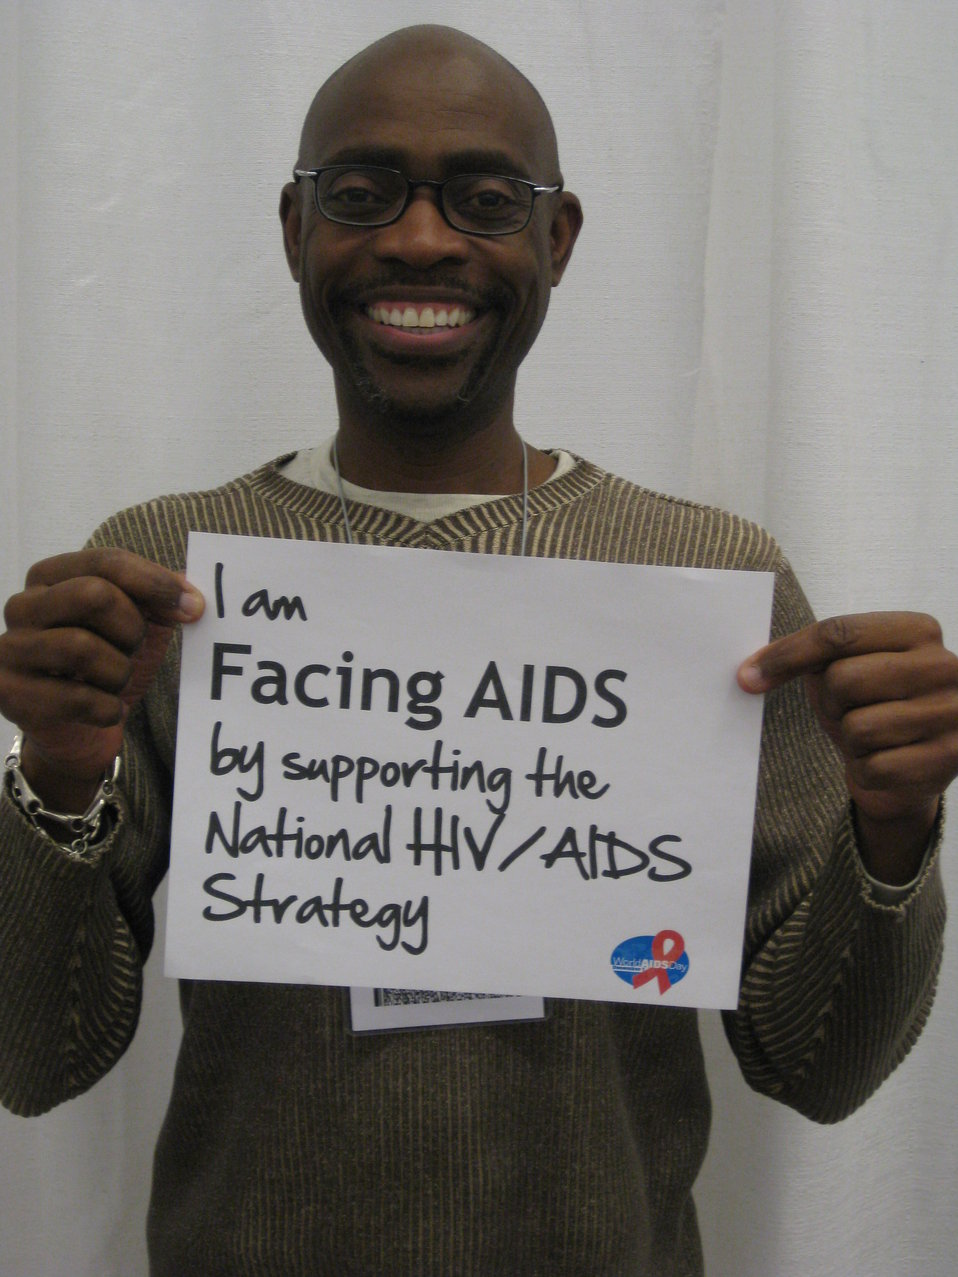 I am FACING AIDS by supporting the National HIV/AIDS Strategy